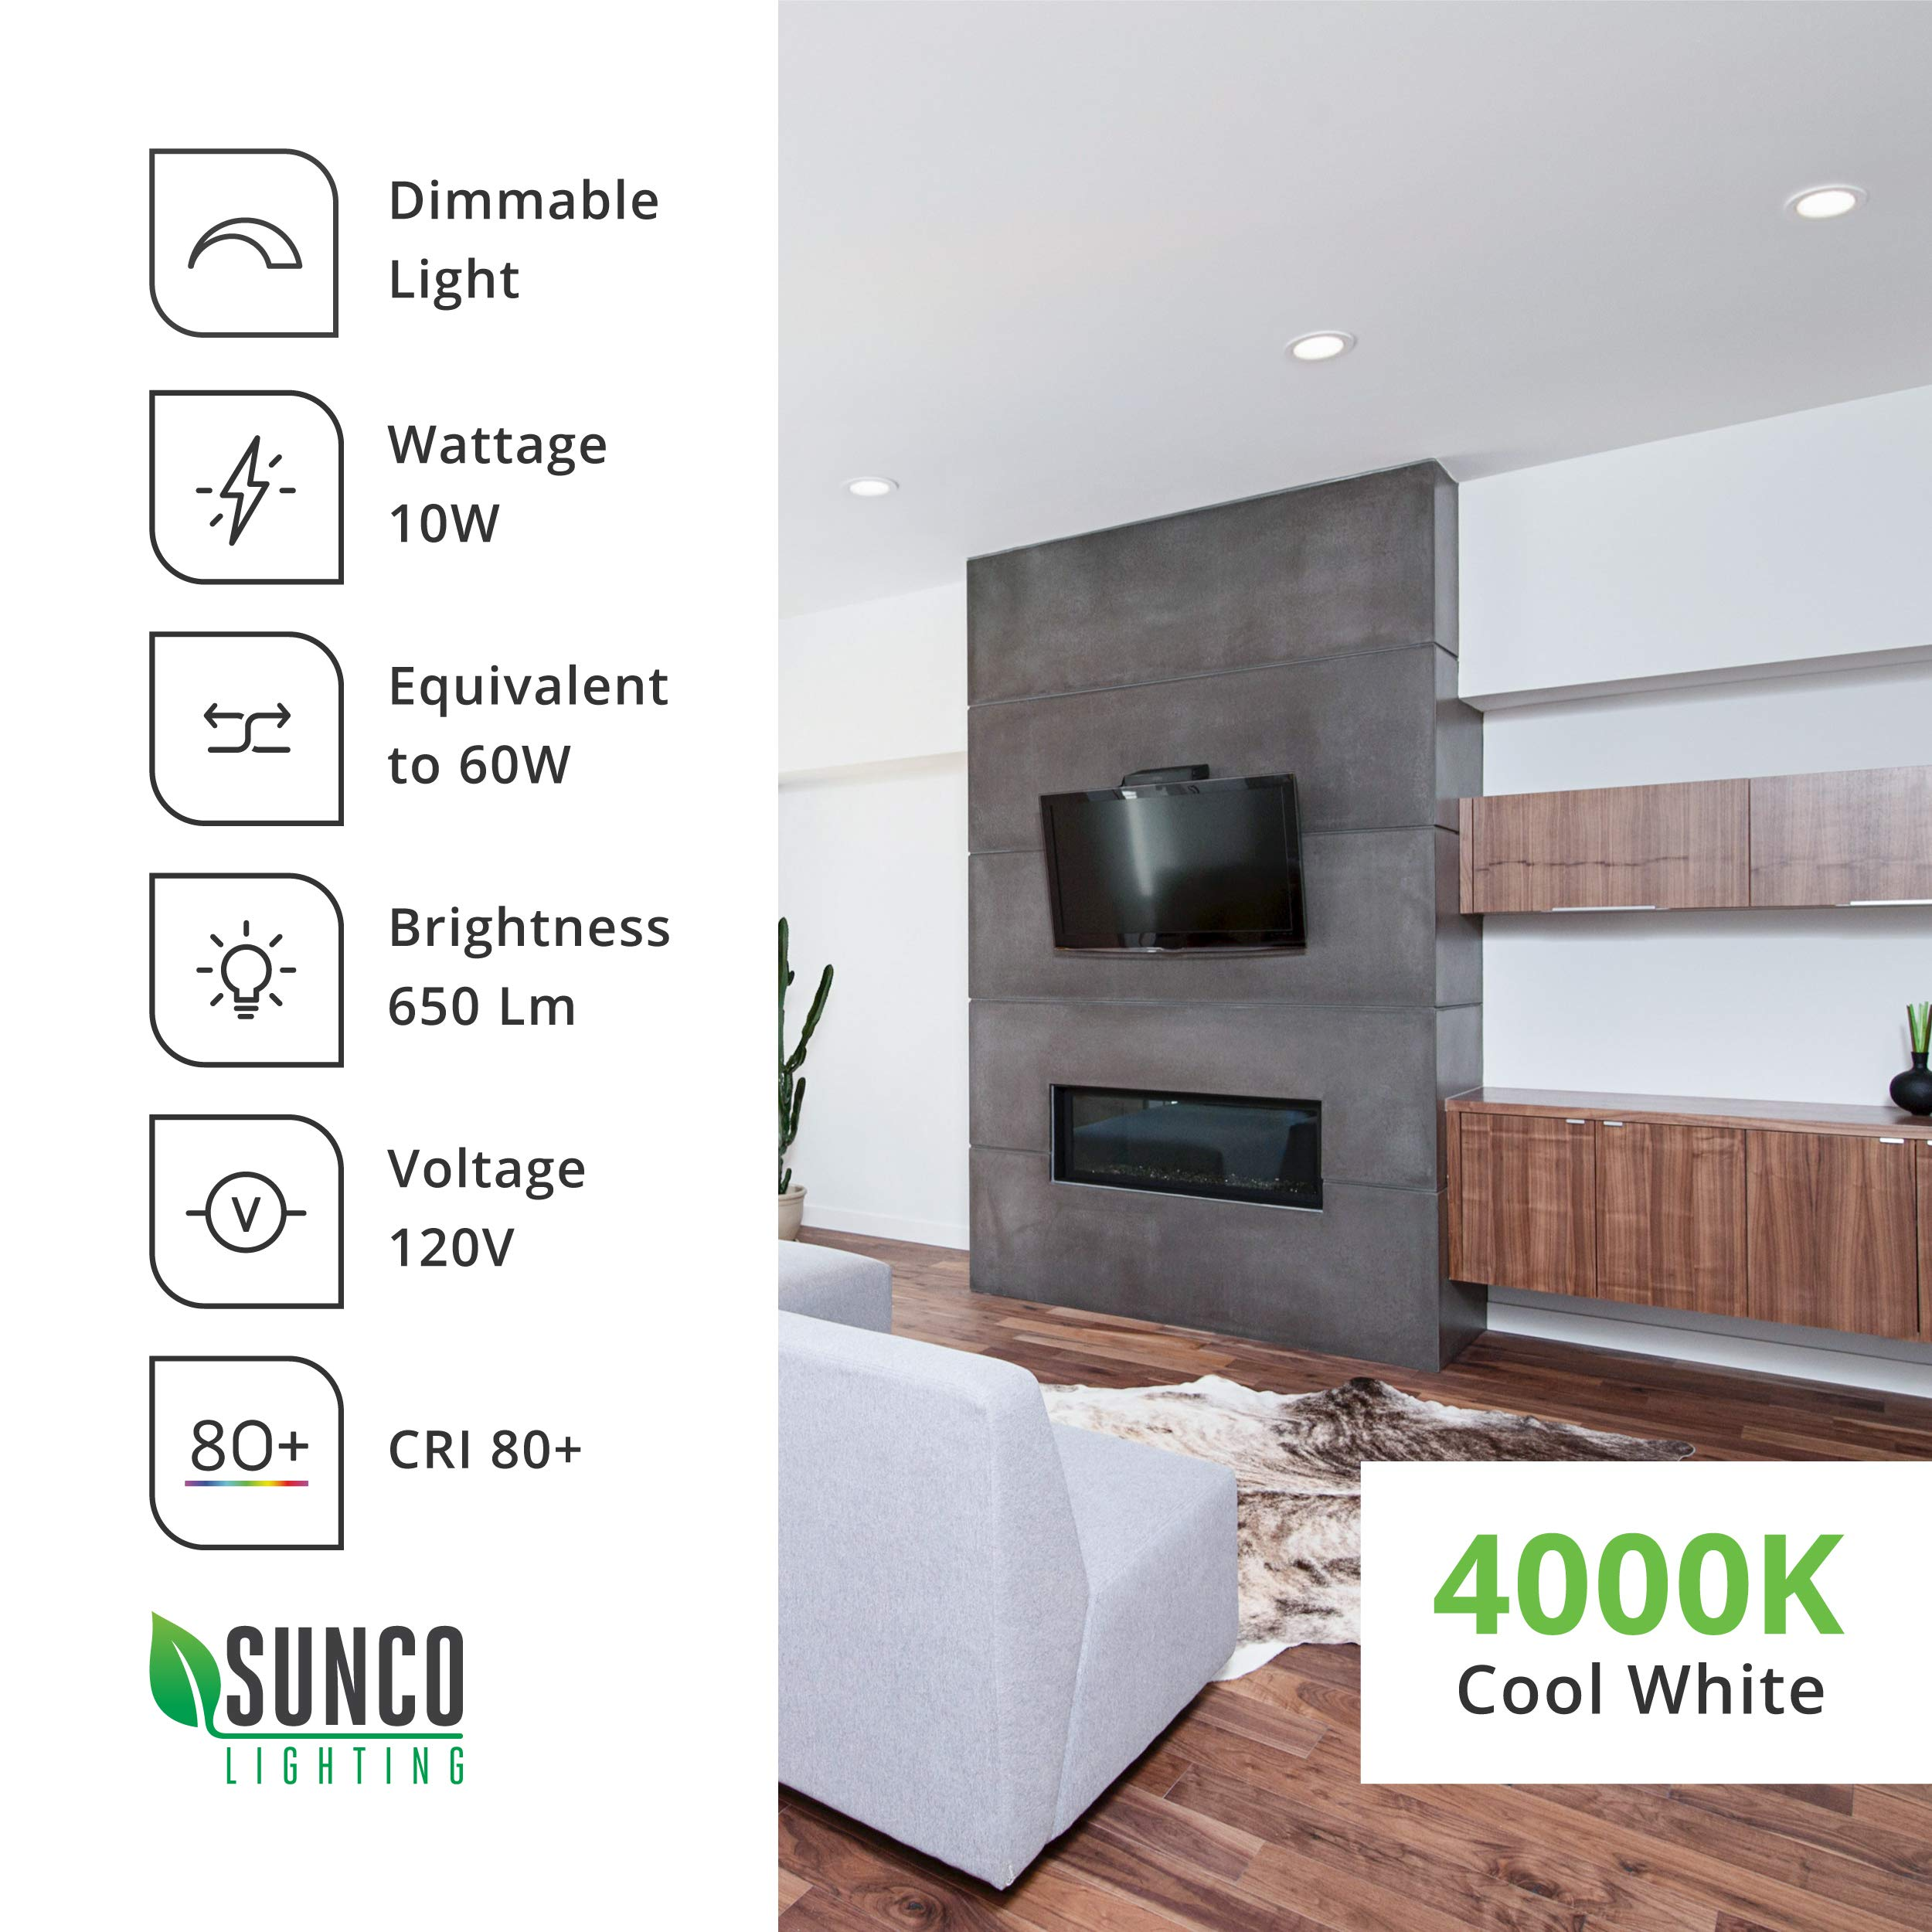 Sunco Lighting 12 Pack 4 Inch Slim LED Downlight with Junction Box,10W=60W, 650 LM, Dimmable, 4000K Cool White, Recessed Jbox Fixture, Simple Retrofit Installation - ETL & Energy Star by Sunco Lighting (Image #9)